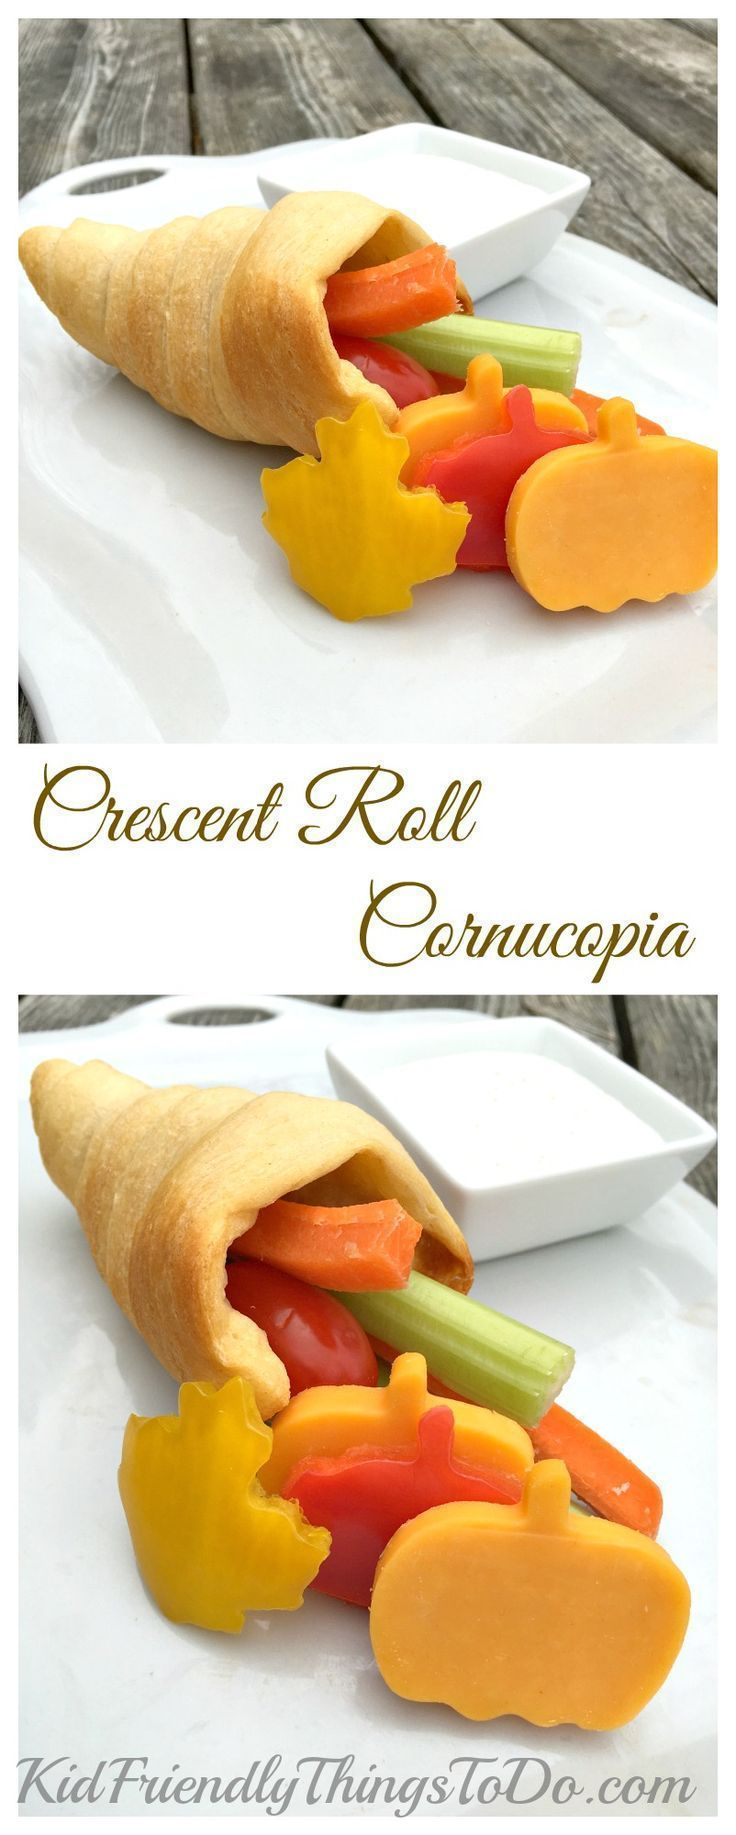 Thanksgiving fun food for kids - Crescent Roll Cornucopia filled with Vegetables and served with ranch dip! Yum and Fun! - http://KidFriendlyThingsToDo.com